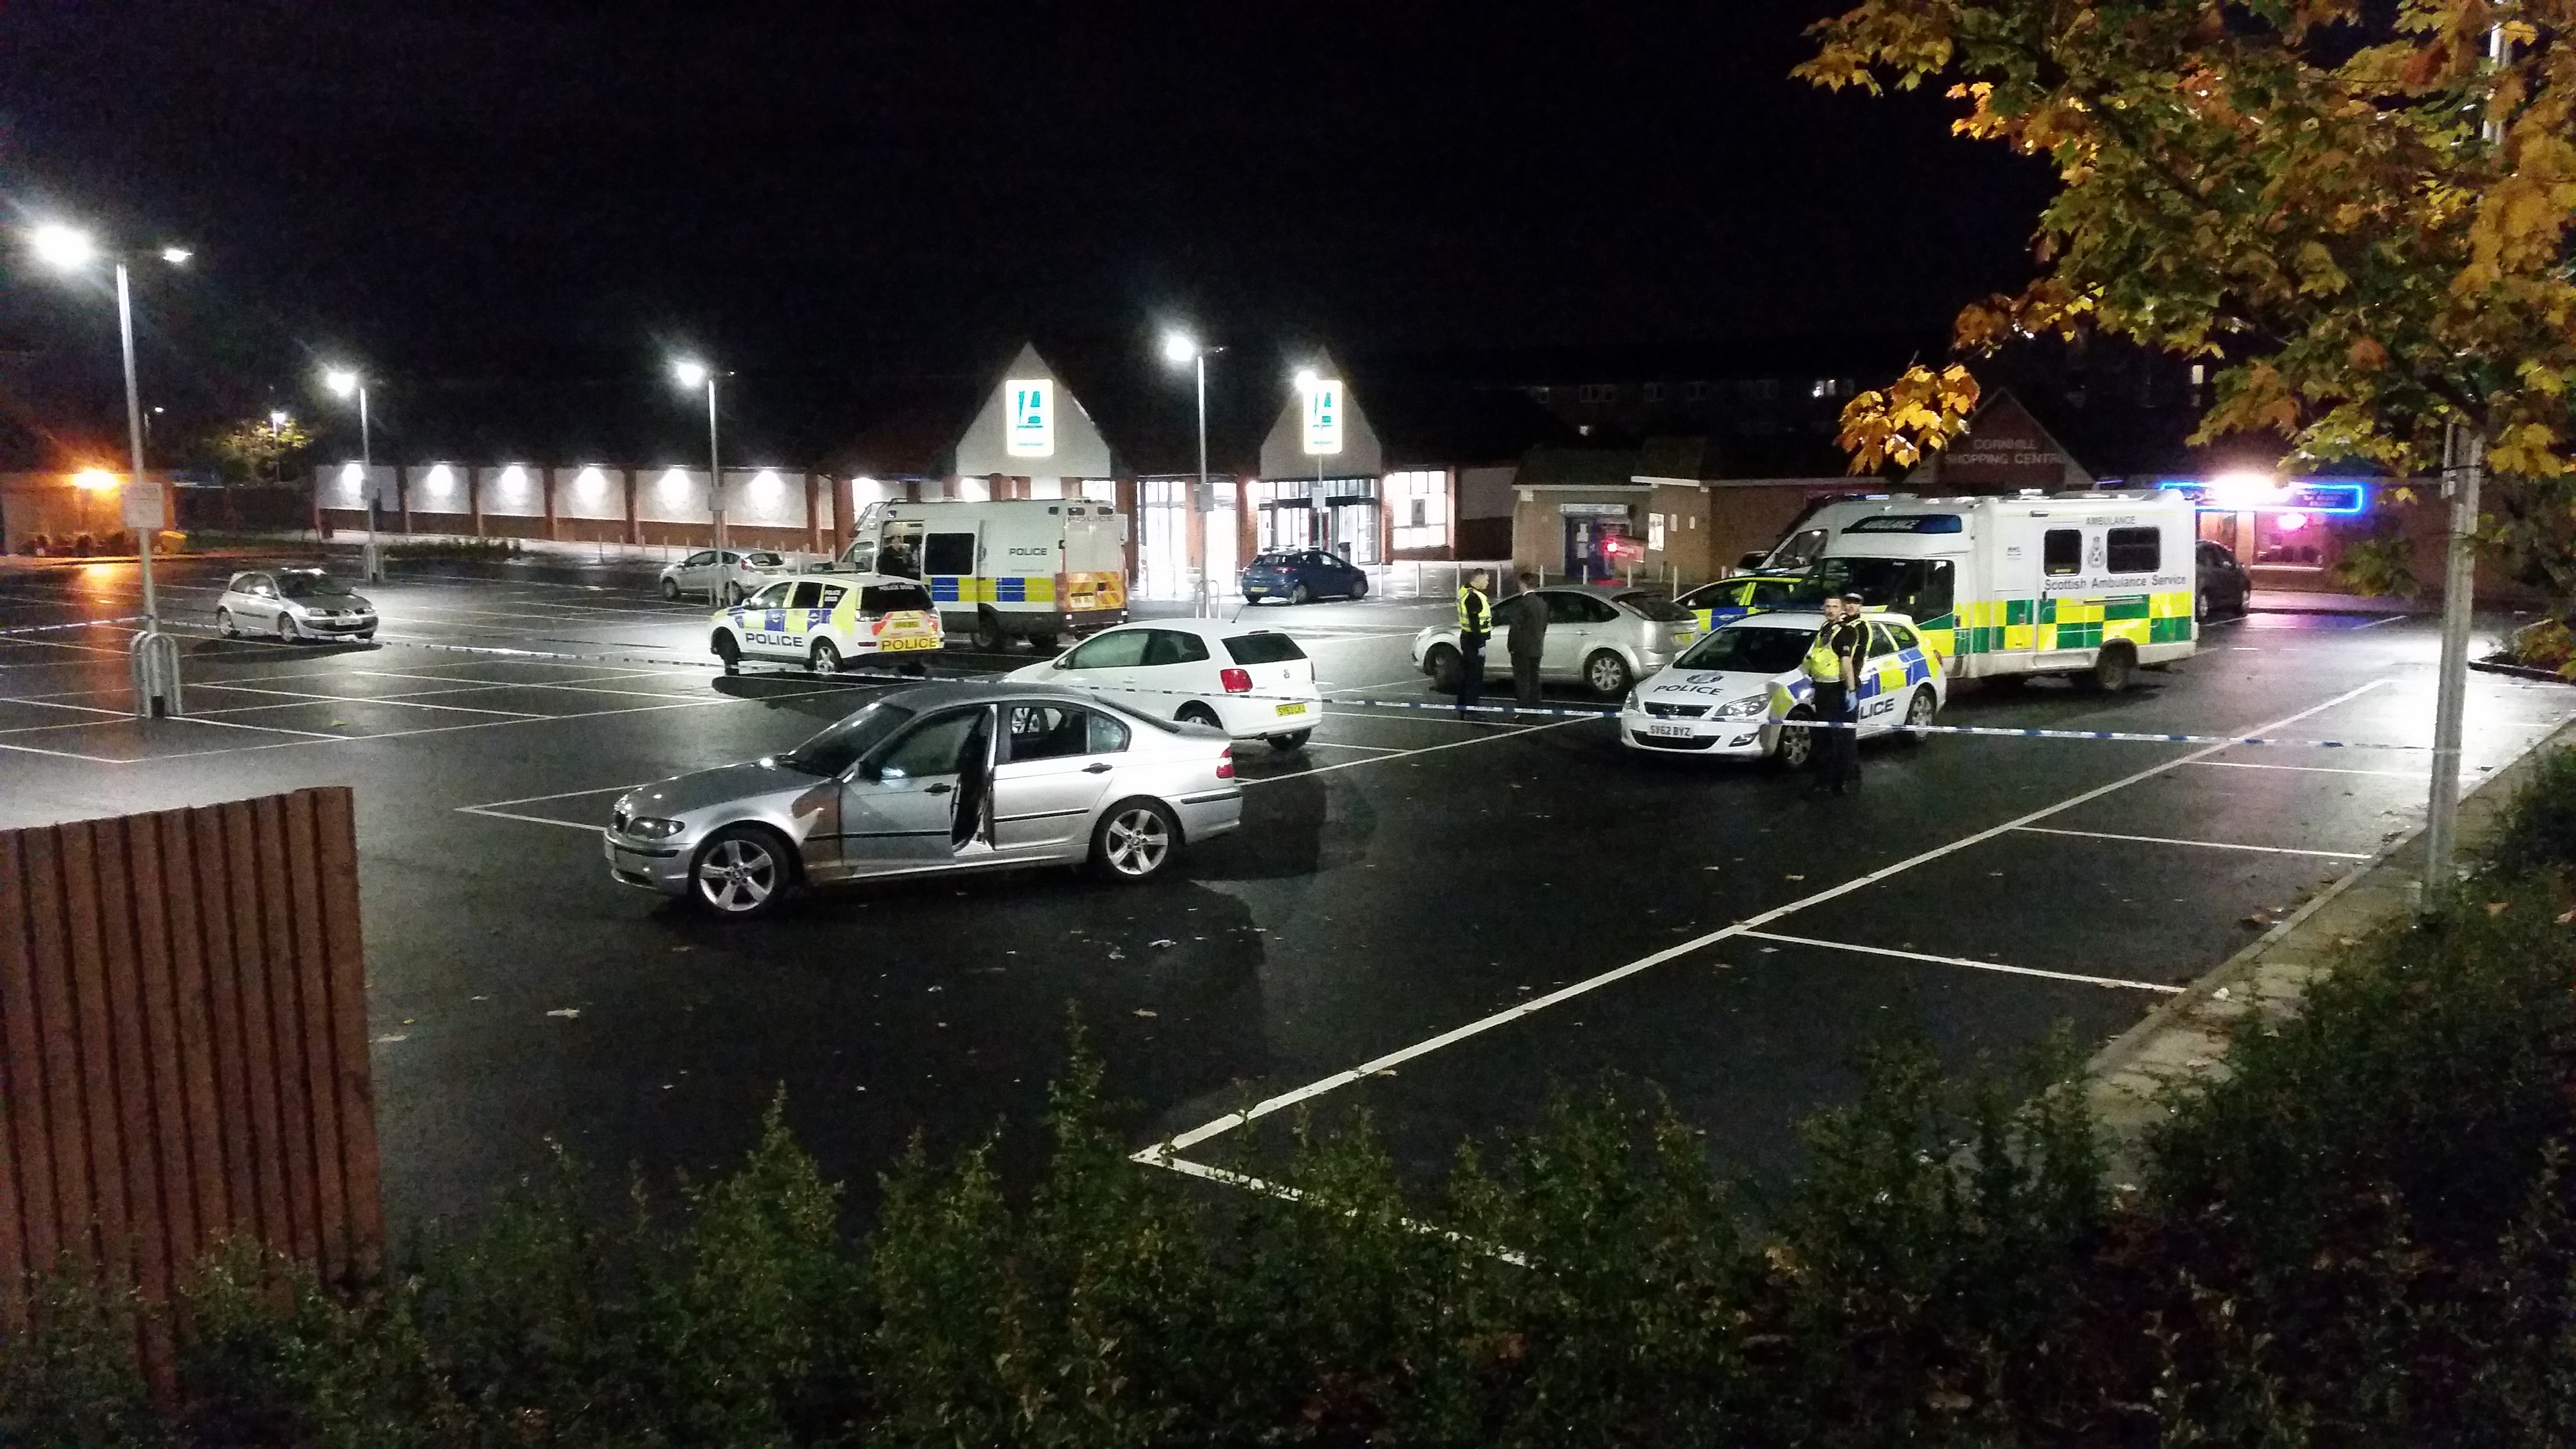 The incident took place outside Aldi.